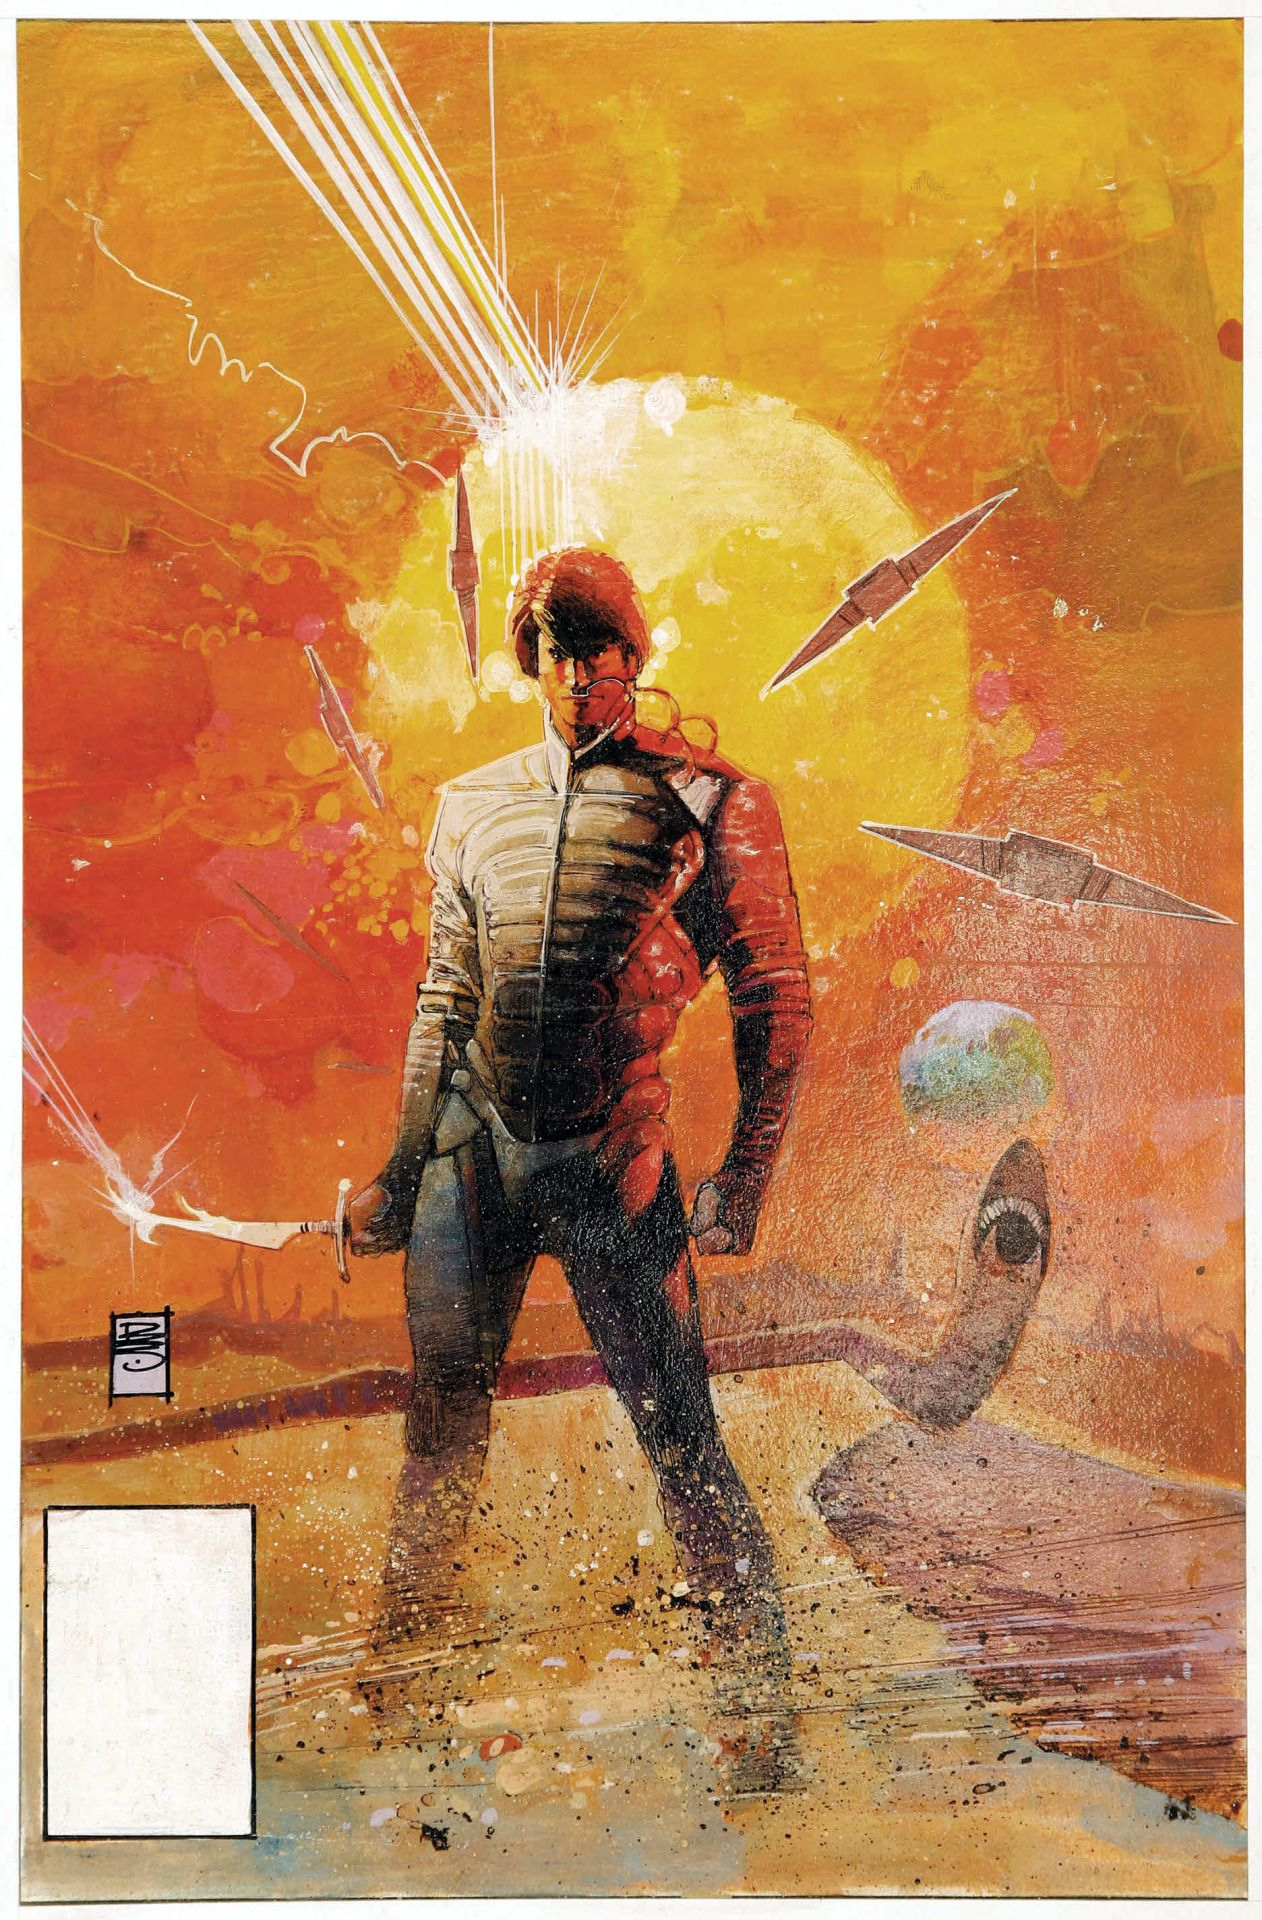 Original cover painting by Bill Sienkiewicz from Dune the